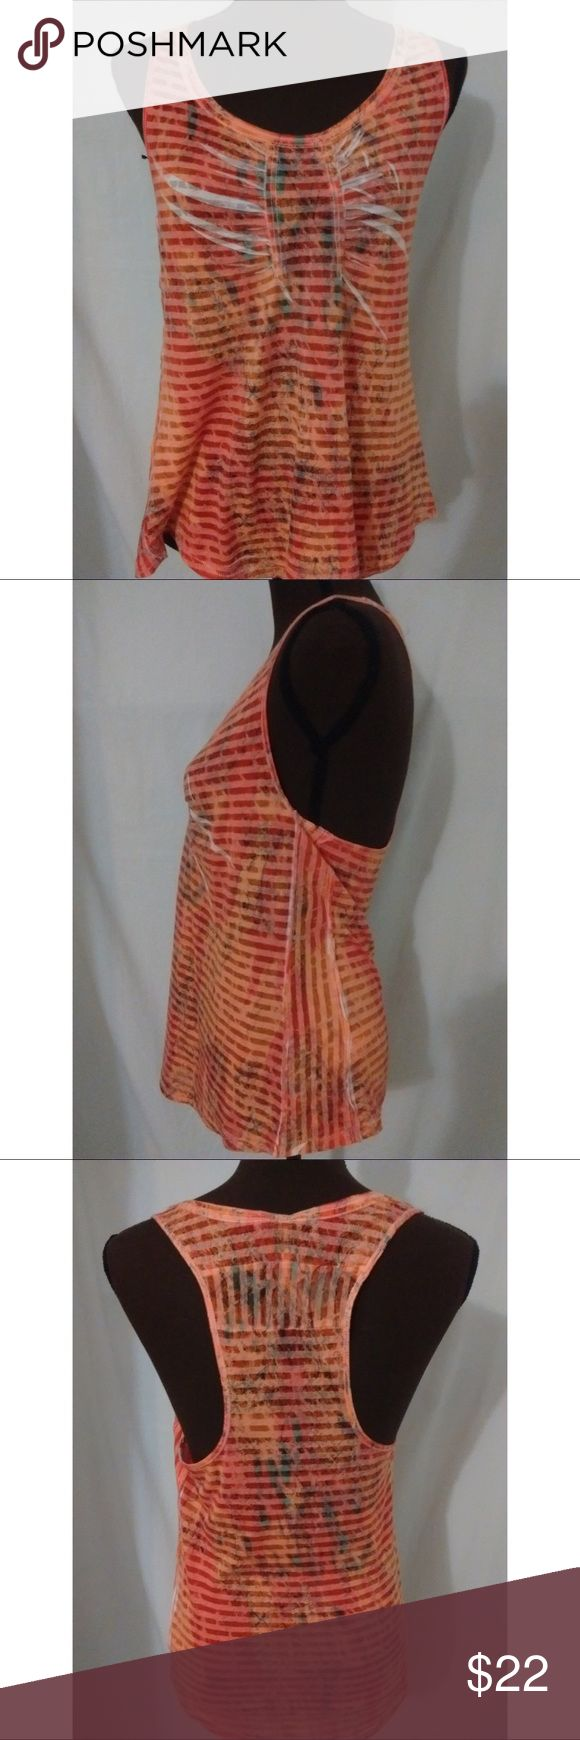 Free People Women's Striped Tank Top Medium sized tank top. Striped tank. Shades of orange with decorative dark swirls. Armpit to armpit 16 inches. Length 26 inches. Free People Tops Tank Tops